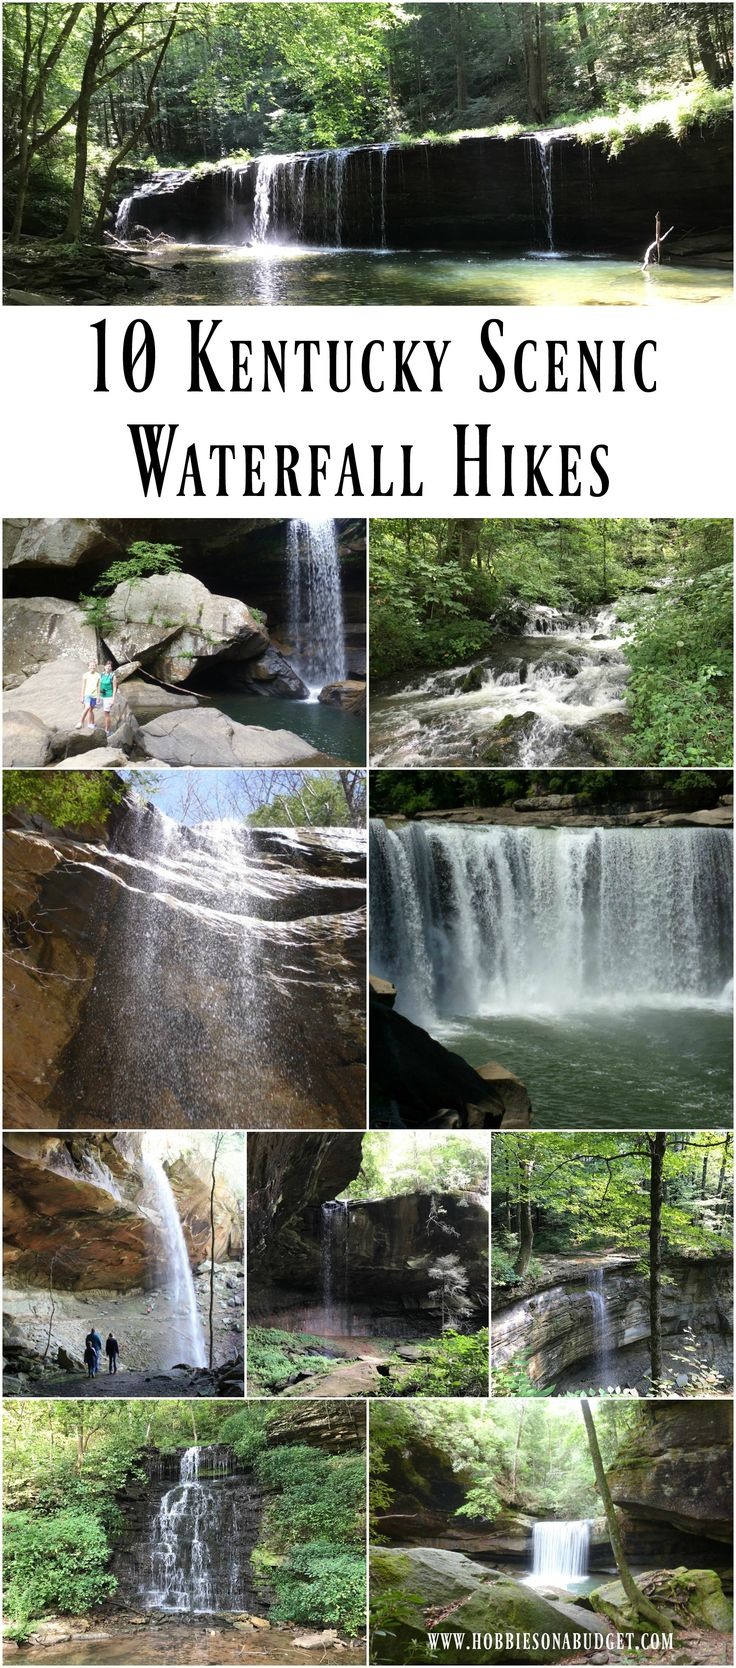 120 Best Kentucky Vacation Ideas Images On Pinterest